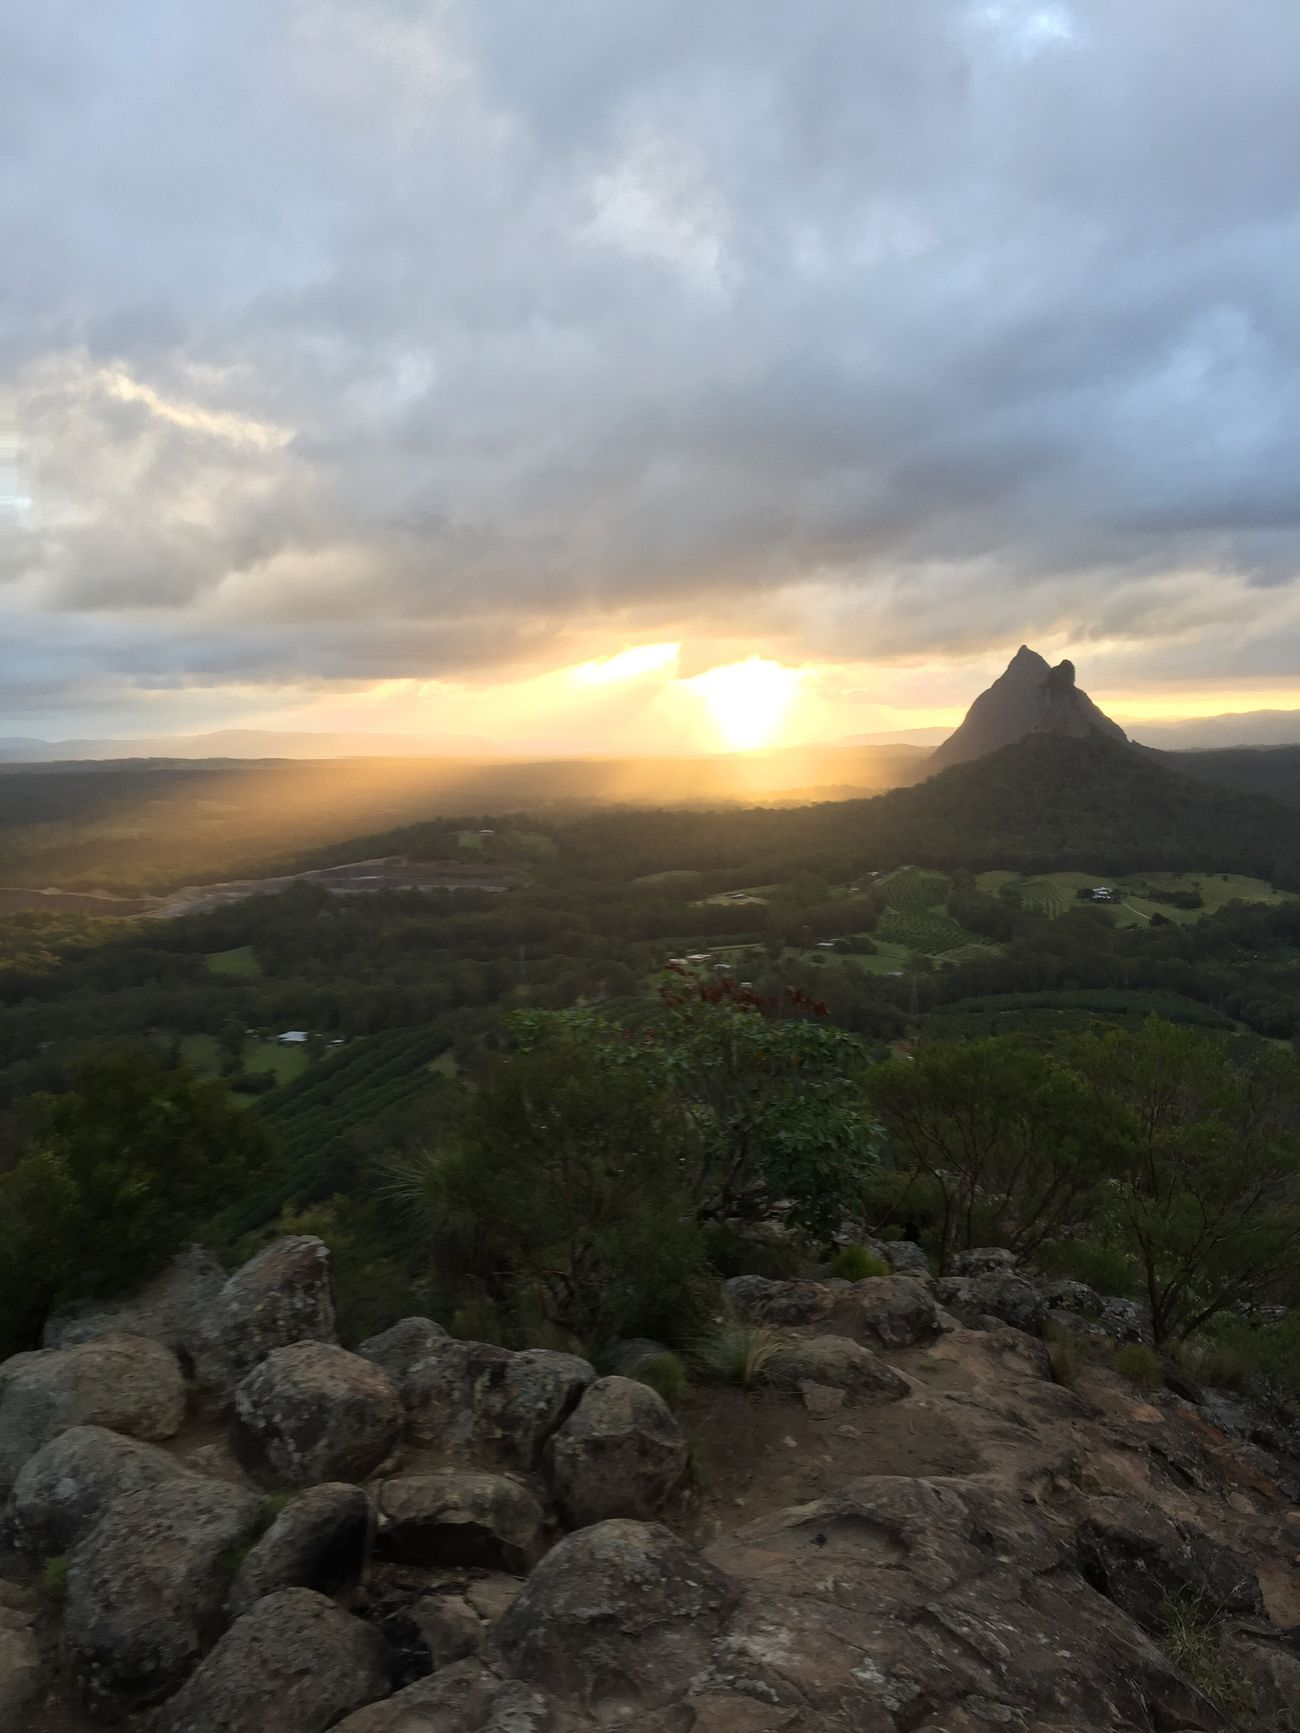 EyeEm Best Shots - Nature Glasshouse Mountains Mountain Climbing Hiking Trail Sunset Silhouettes Sunset_collection EyeEm Nature Lover Nationalpark